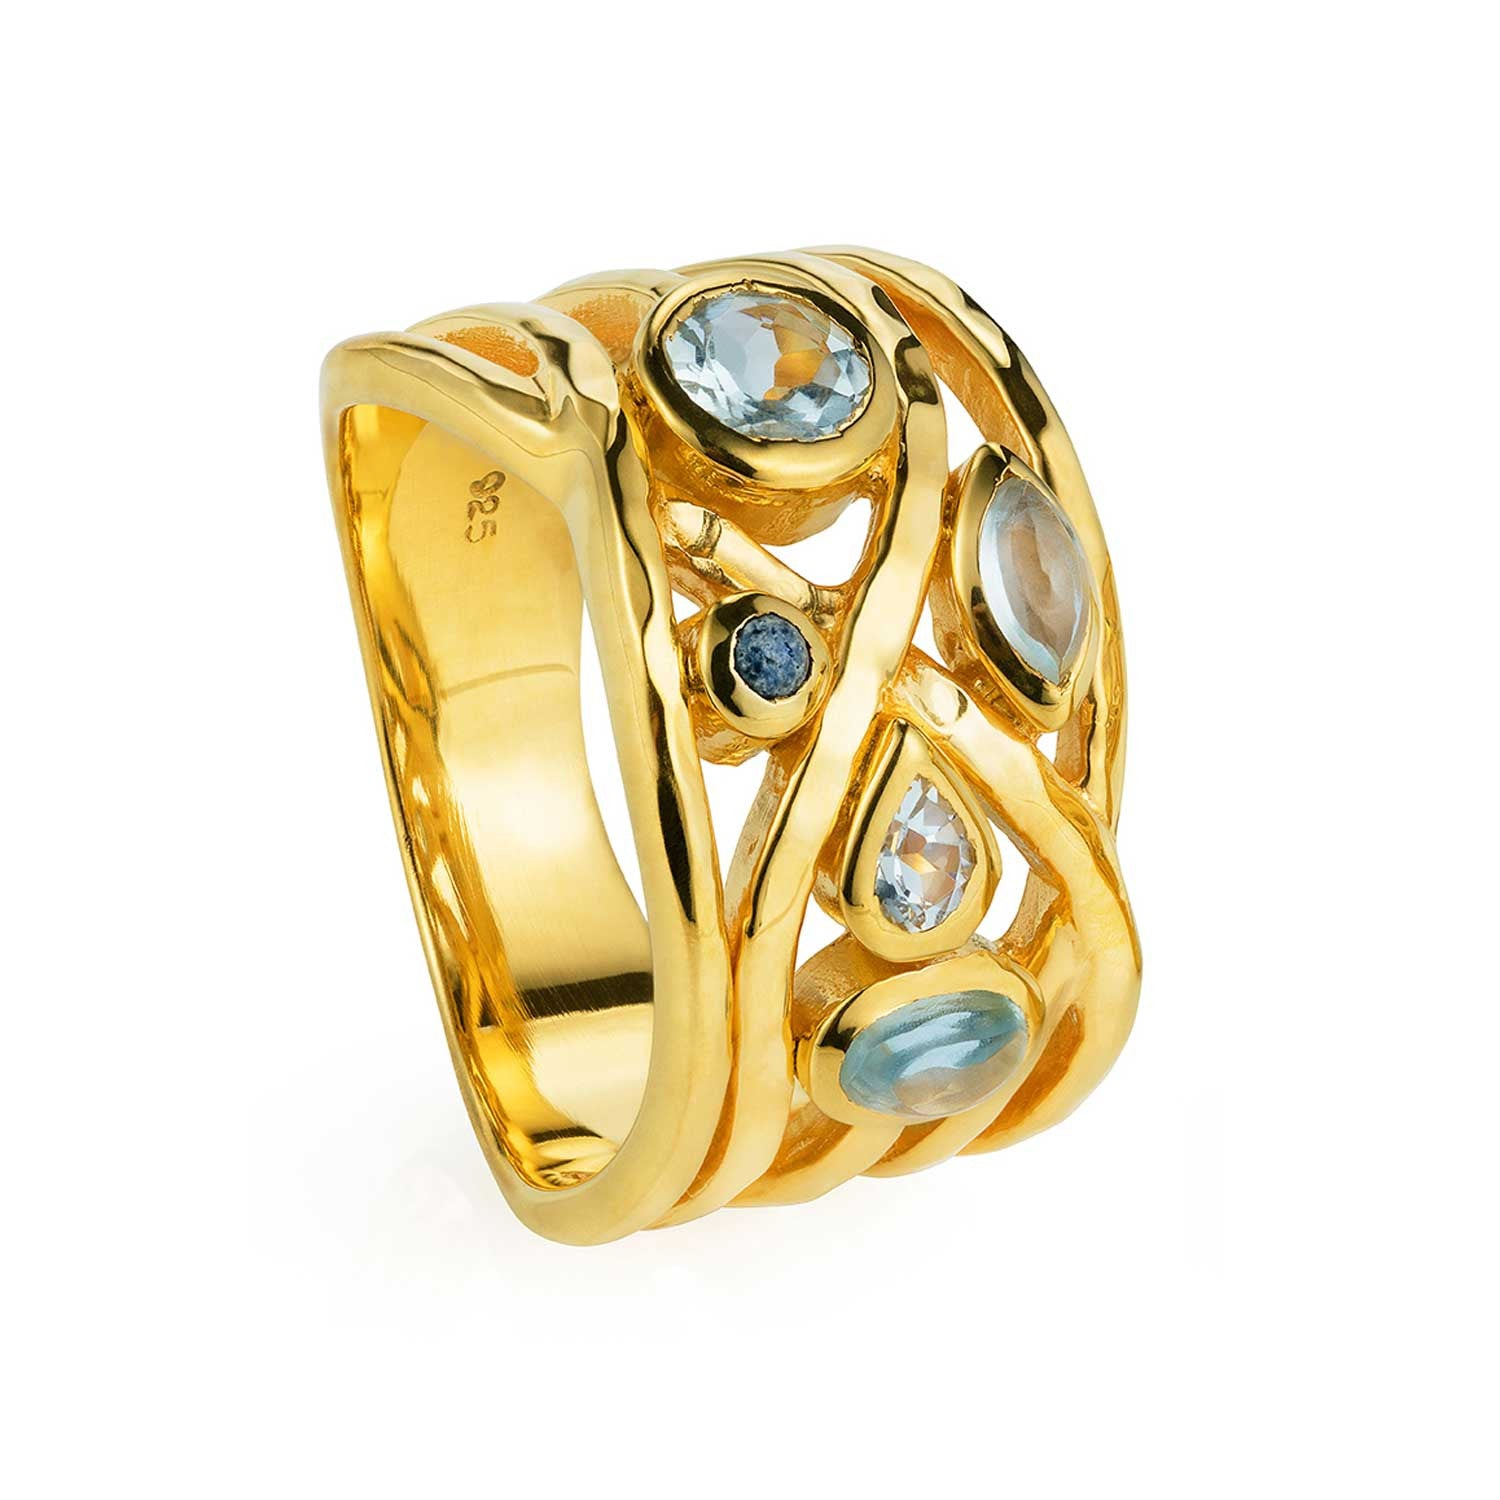 Gold vermeil cocktail ring, blue topaz, aquamarine, lapis lazuli gemstone, moonstone, geometric, unique British design